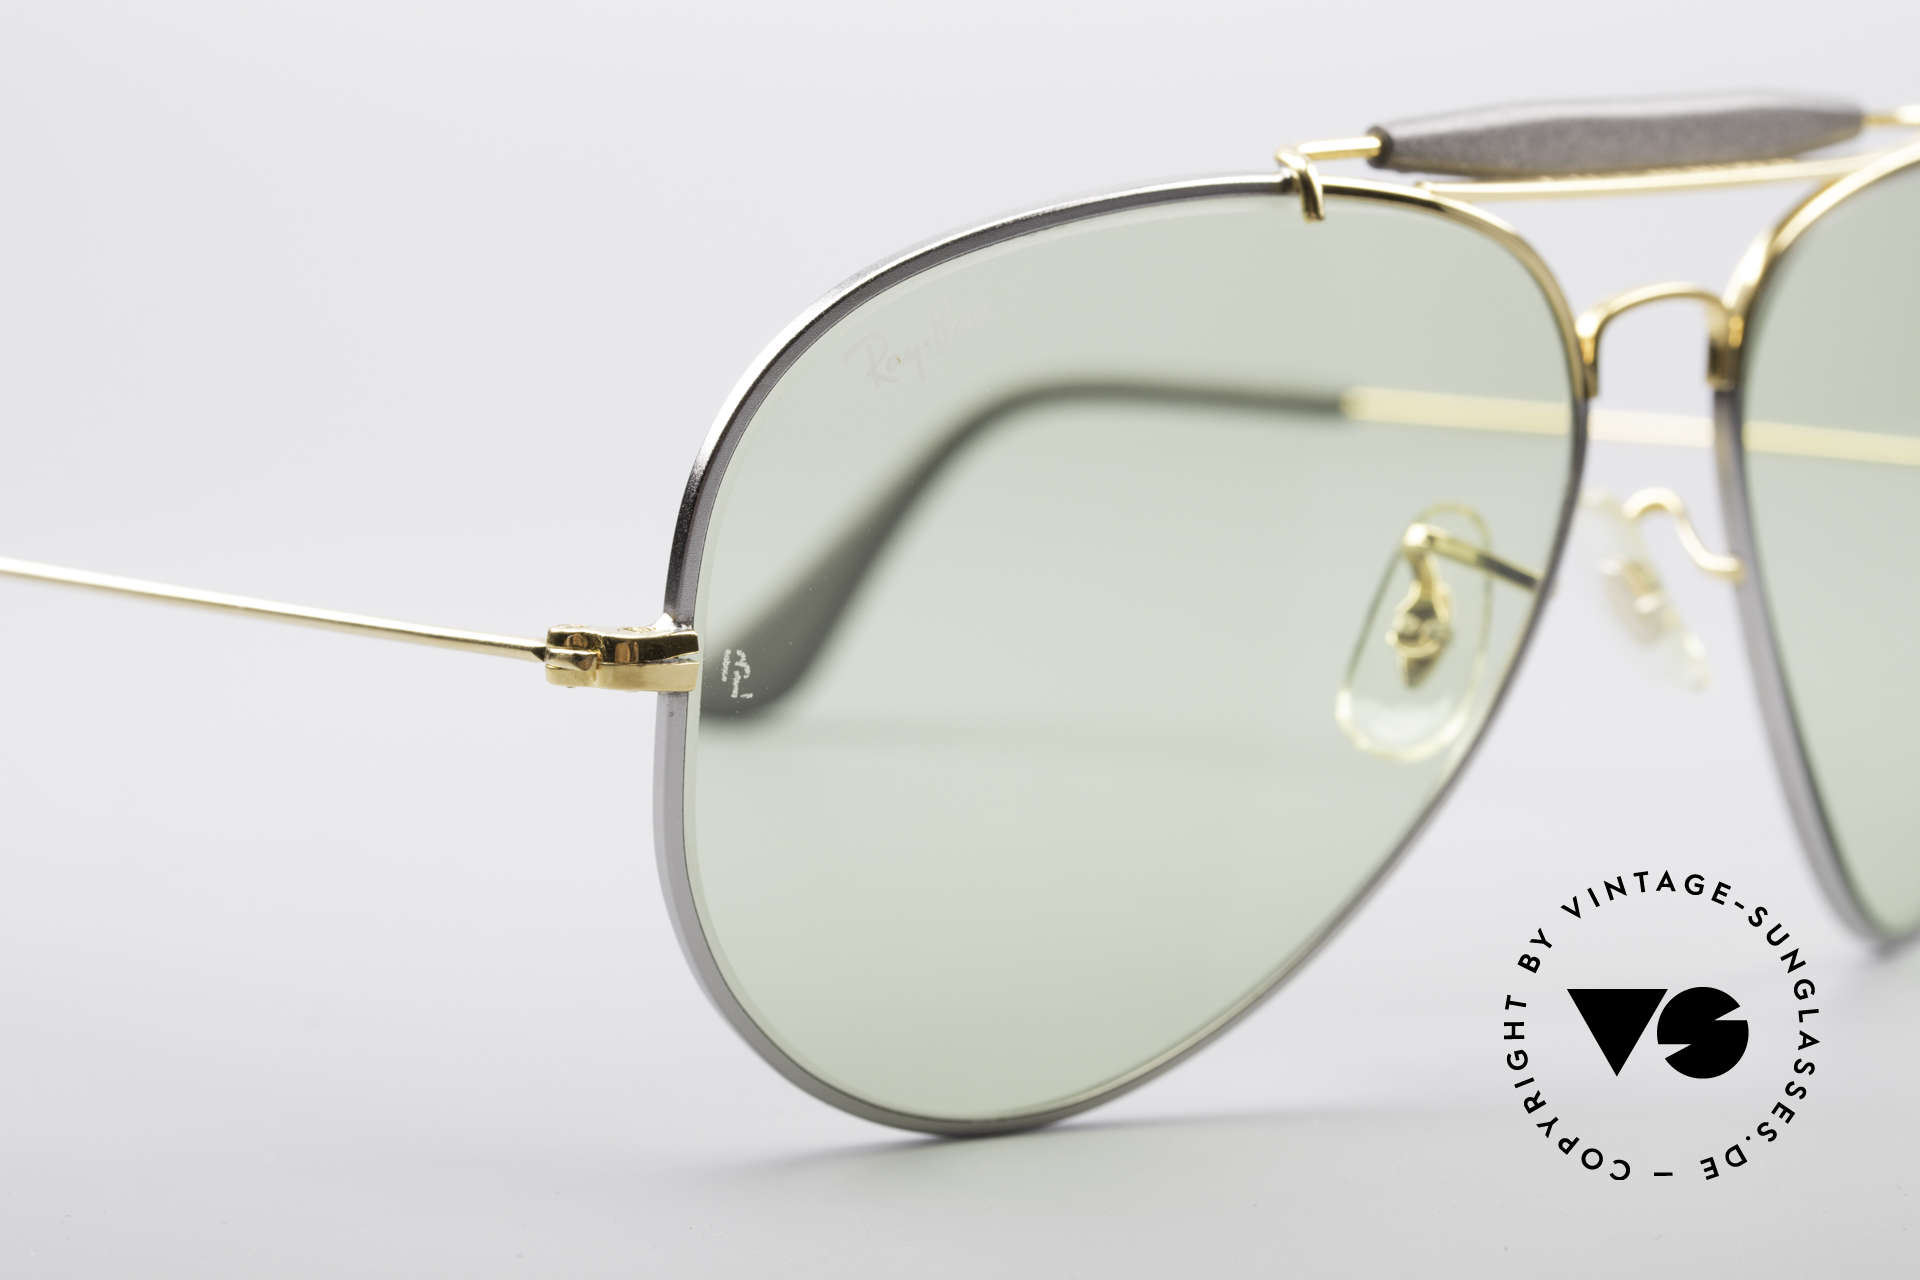 Ray Ban Outdoorsman II Precious Metals Changeable, changeable lenses darken automatically in the sun, Made for Men